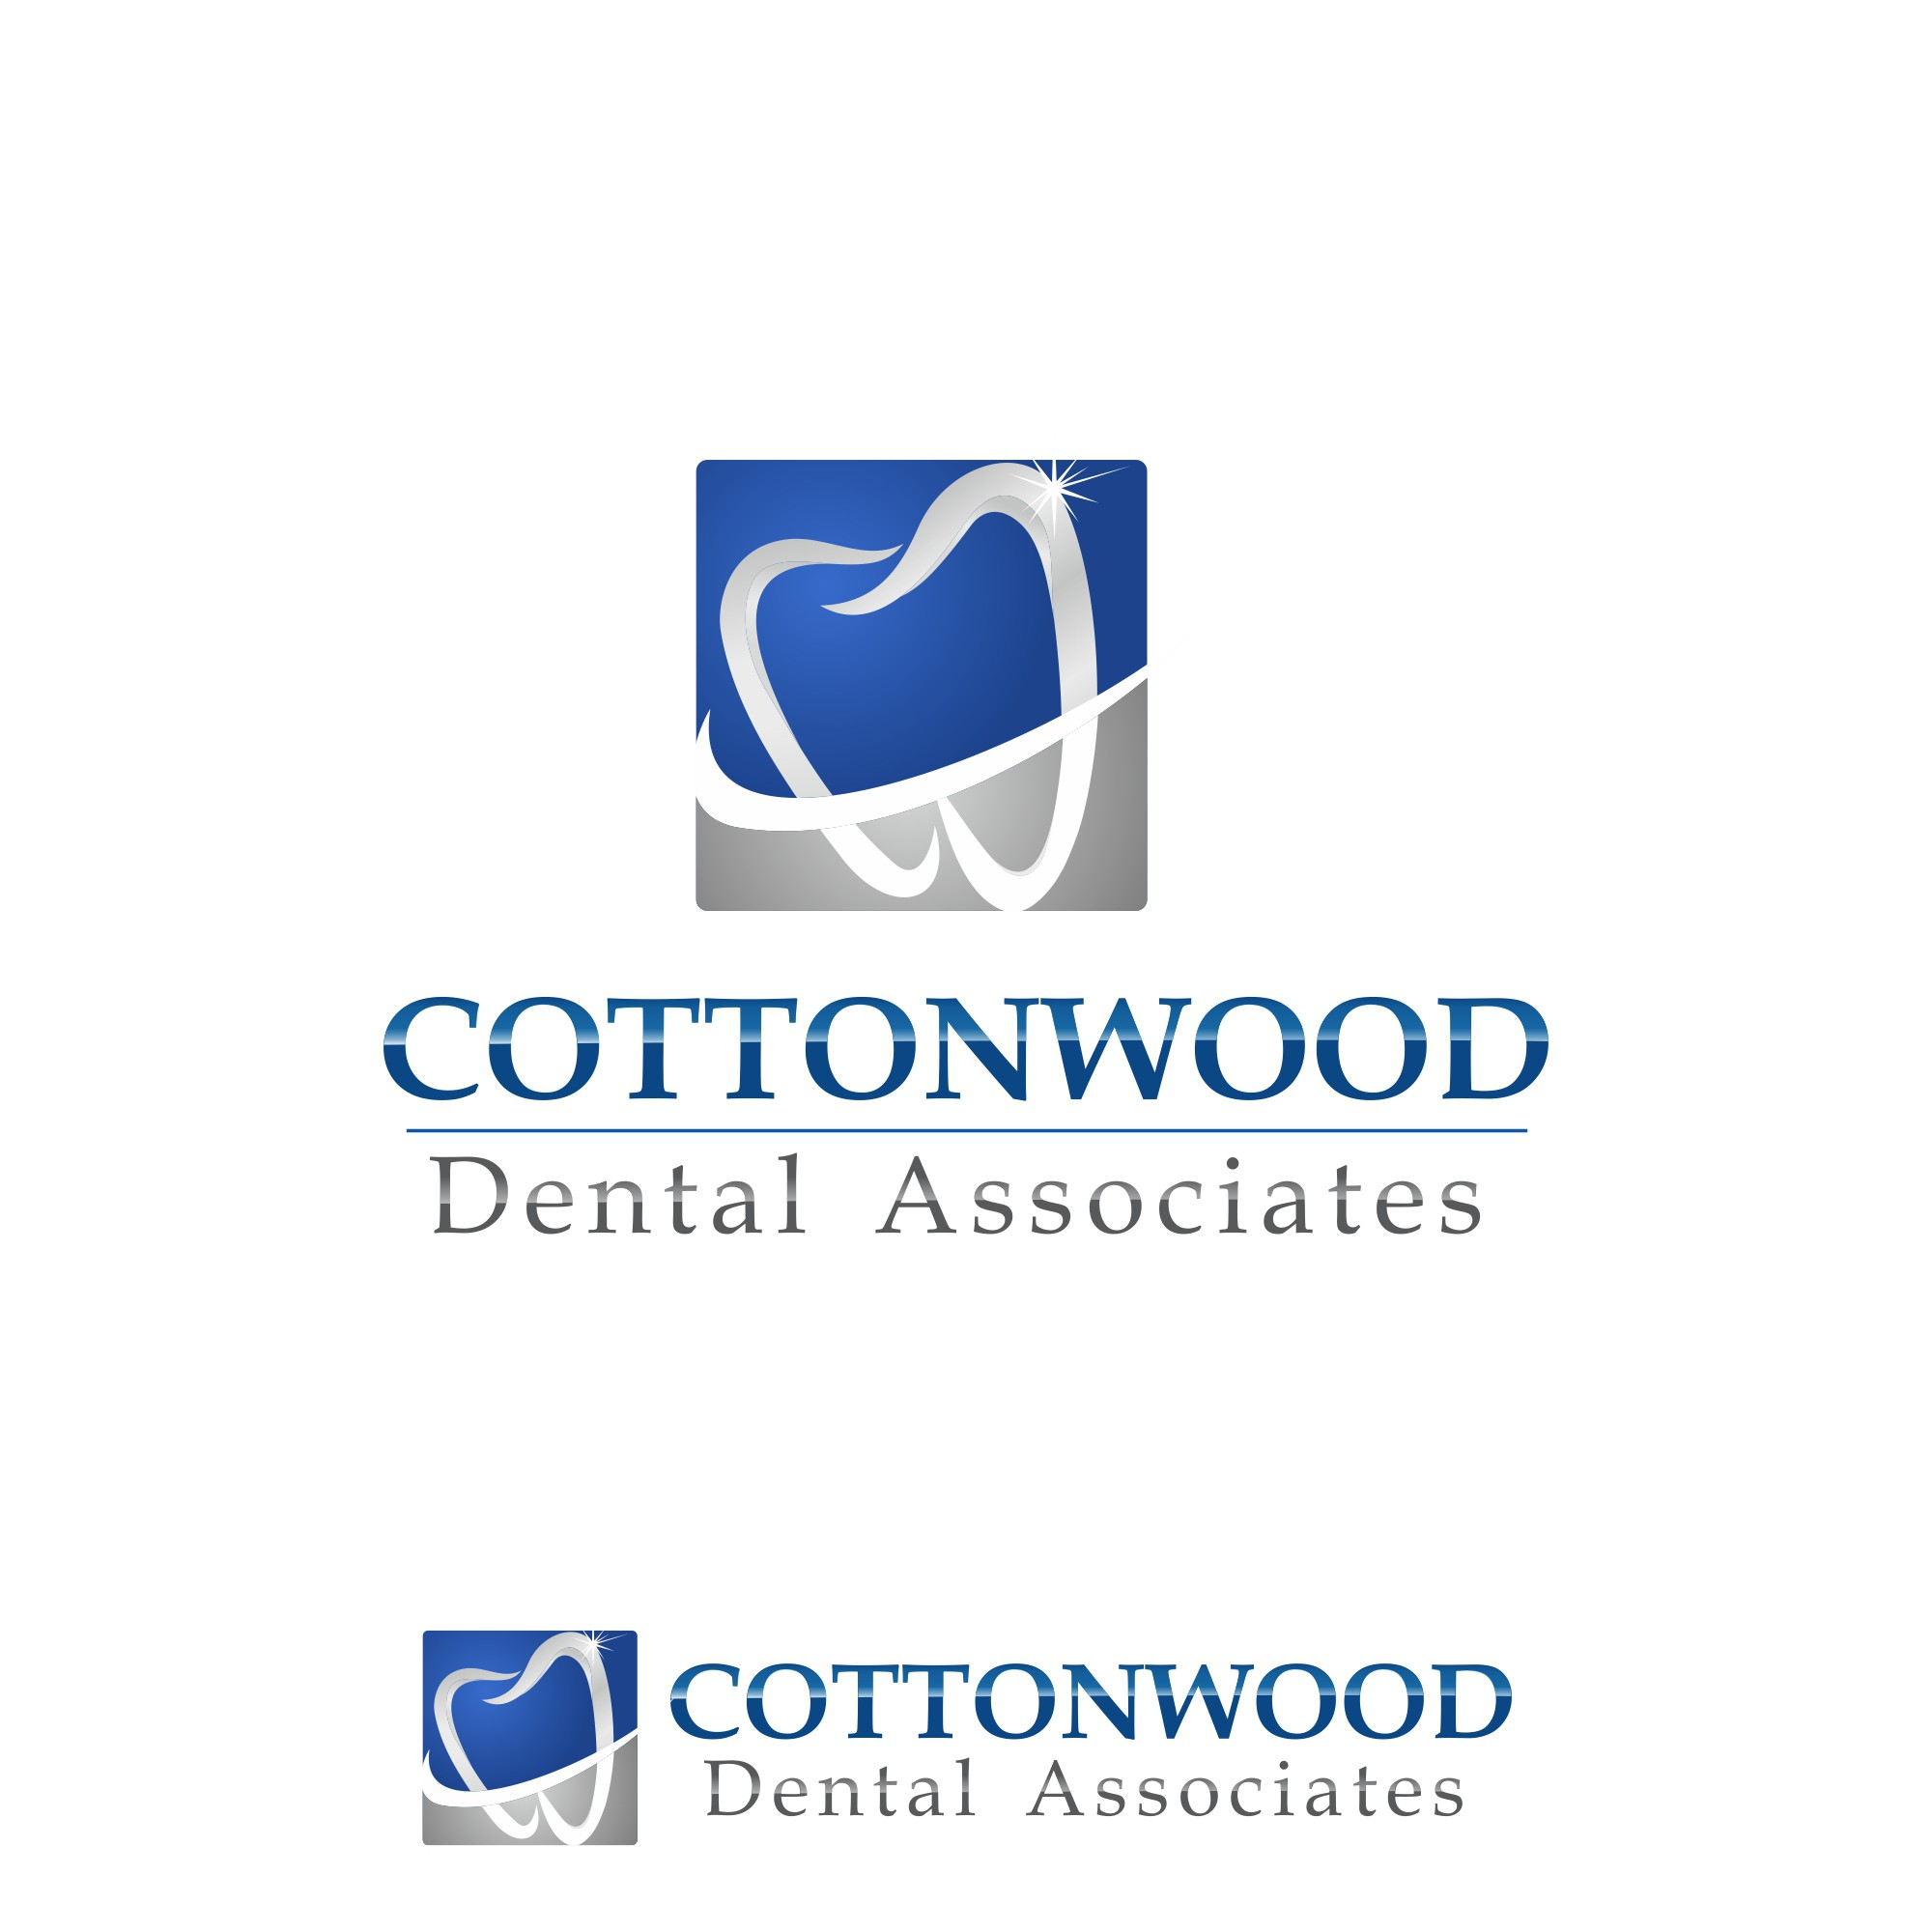 Create a logo to rejuvenate a 30 year old dental office